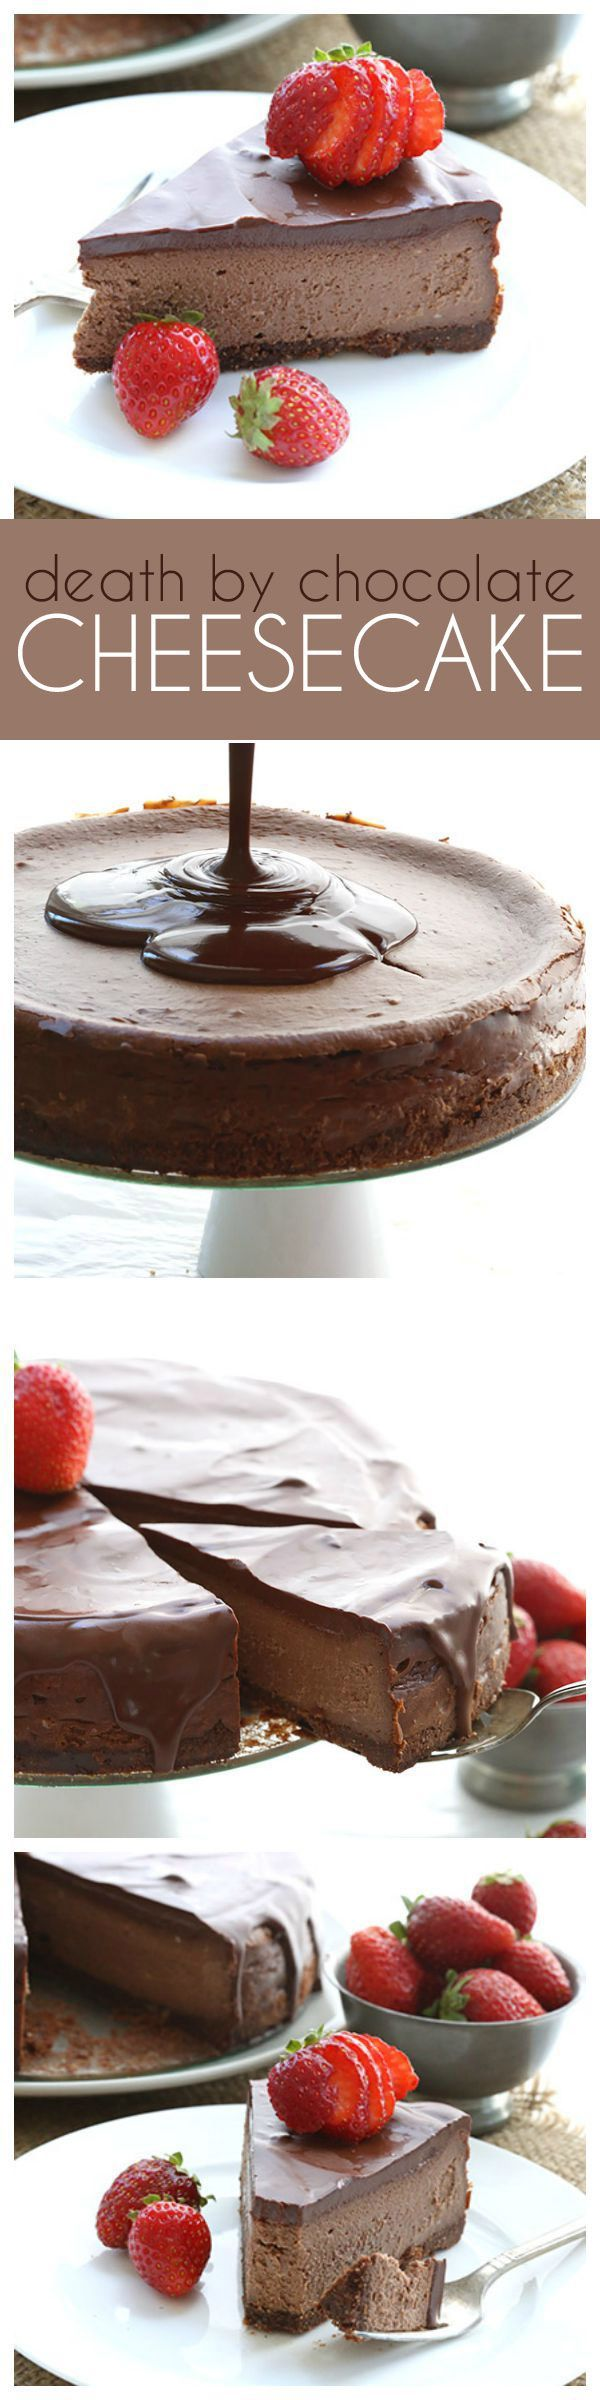 This low carb, intensely chocolate cheesecake may be the ultimate keto dessert…